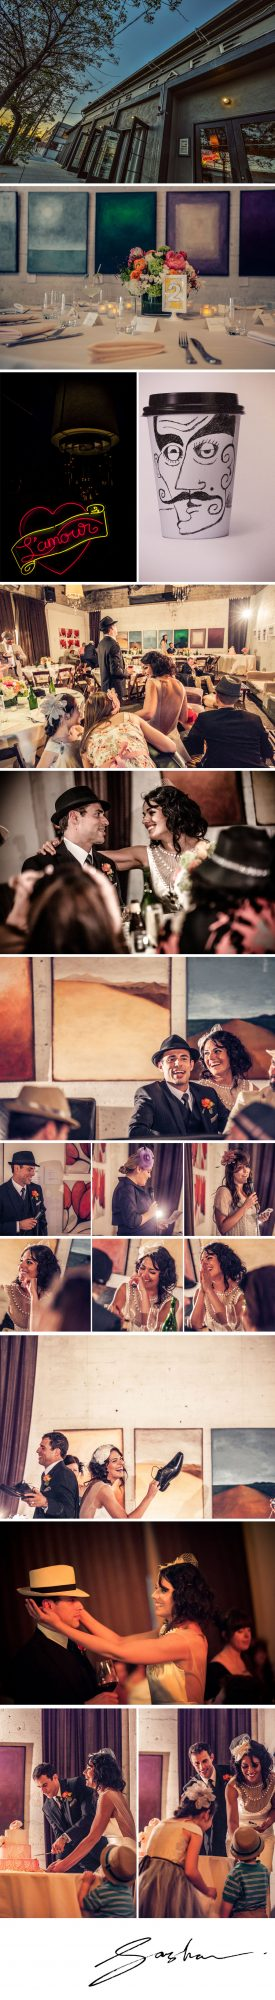 axis cafe gallery wedding